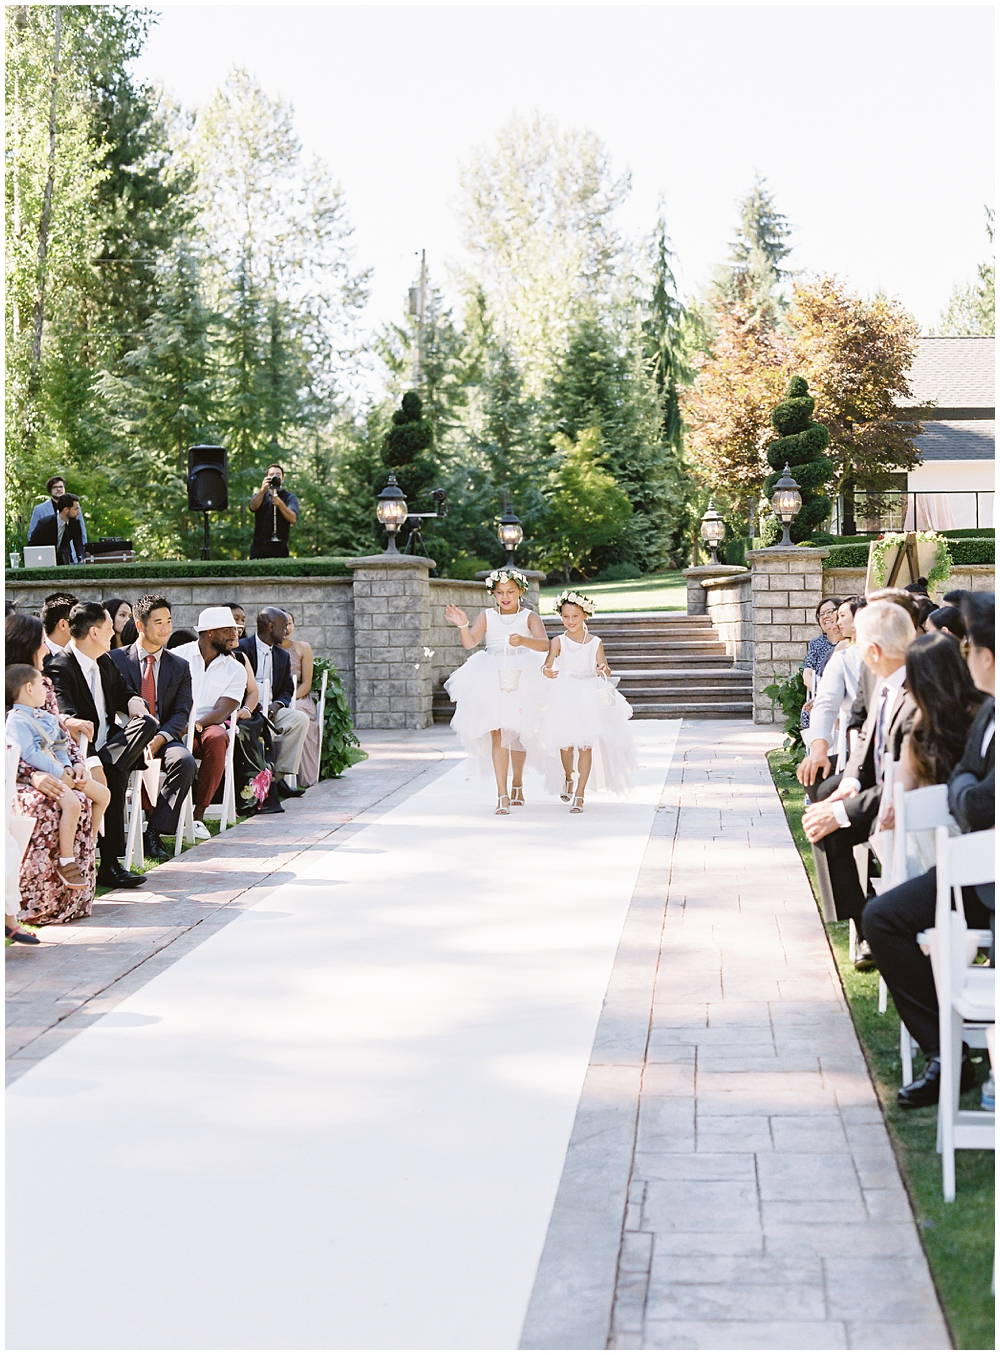 ab914bcc60b95b4d8f4a39f8c609ccf9 - Rock Creek Gardens Wedding And Event Venue